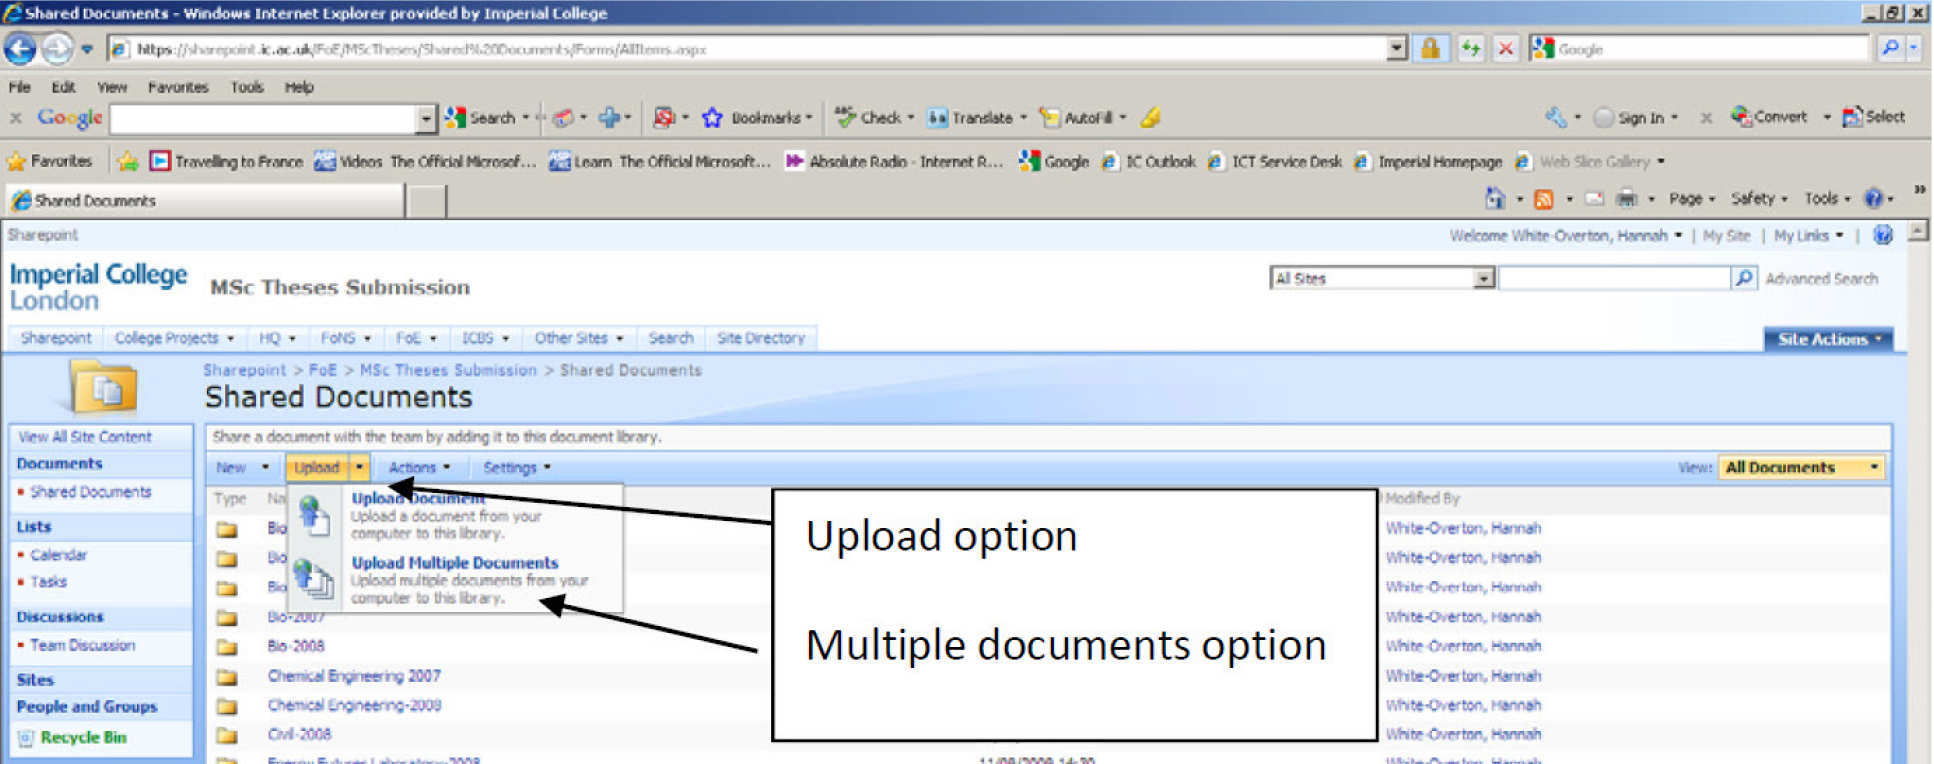 Screen image showing SharePoint upload option